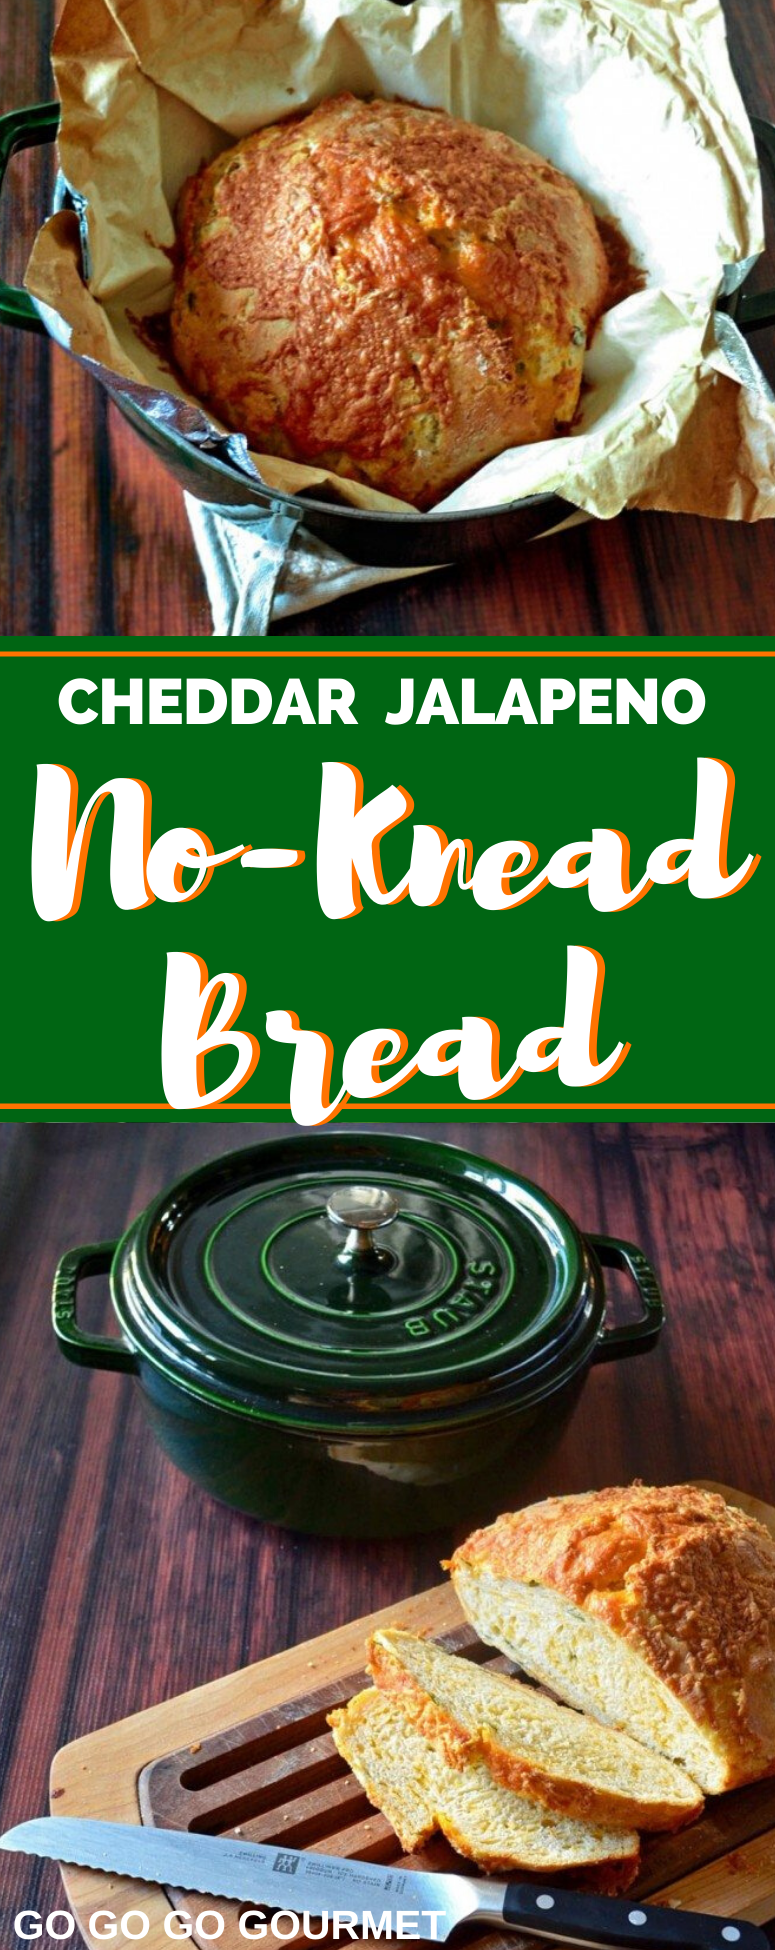 This easy Cheddar Jalapeno No Knead Bread recipe is the best! Perfectly soft with just a hint of spice, you are going to love this delicious bread recipe! #gogogogourmet #cheddarjalapenobread #homemadebread #easybread via @gogogogourmet